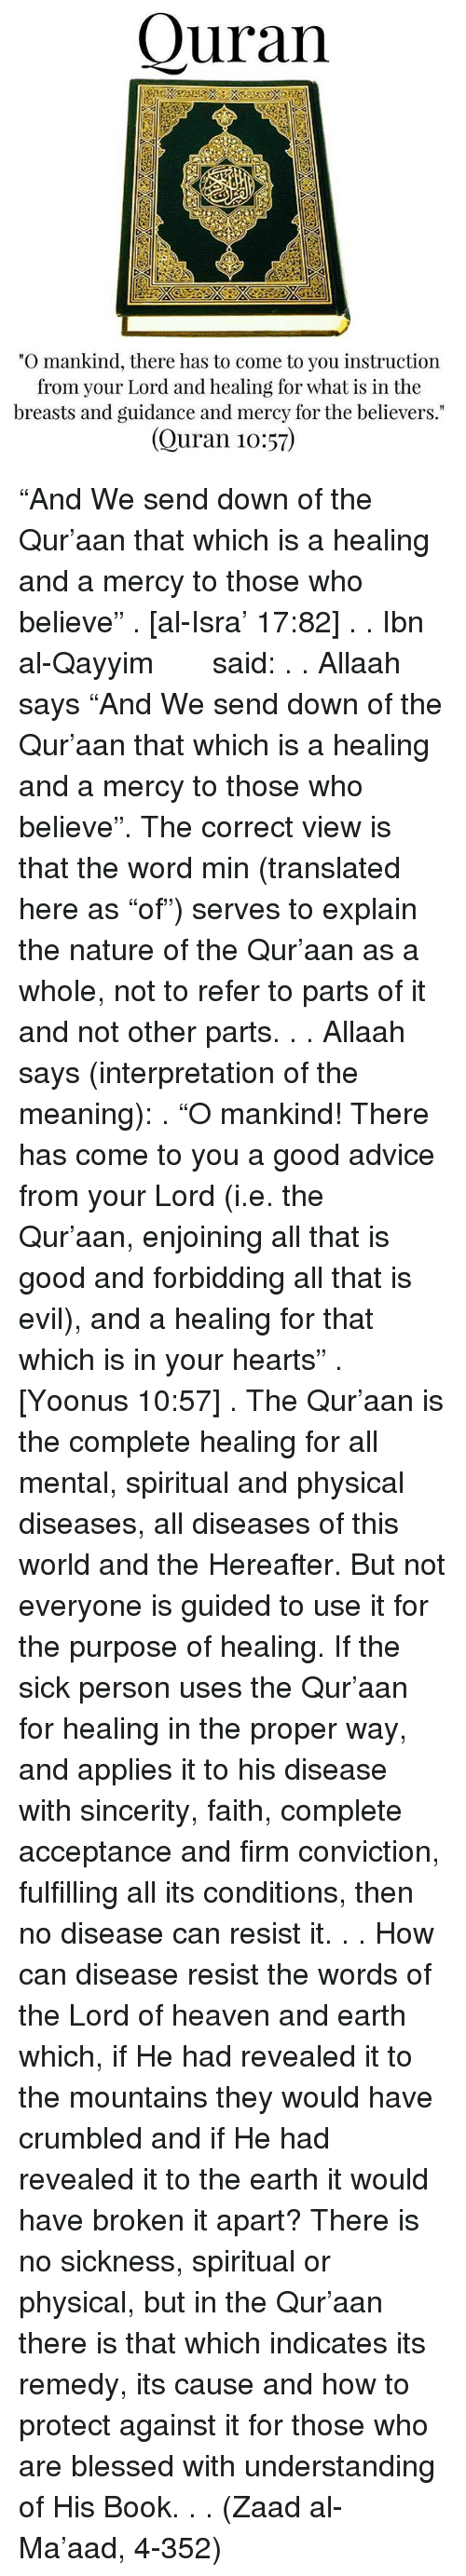 "Referance: Quran  ""O mankind, there has to come to you instruction  from your Lord and healing for what is in the  breasts and guidance and mercy for the believers.""  (Quran 10:57) ""And We send down of the Qur'aan that which is a healing and a mercy to those who believe"" . [al-Isra' 17:82] . . Ibn al-Qayyim رحمه الله said: . . Allaah says ""And We send down of the Qur'aan that which is a healing and a mercy to those who believe"". The correct view is that the word min (translated here as ""of"") serves to explain the nature of the Qur'aan as a whole, not to refer to parts of it and not other parts. . . Allaah says (interpretation of the meaning): . ""O mankind! There has come to you a good advice from your Lord (i.e. the Qur'aan, enjoining all that is good and forbidding all that is evil), and a healing for that which is in your hearts"" . [Yoonus 10:57] . The Qur'aan is the complete healing for all mental, spiritual and physical diseases, all diseases of this world and the Hereafter. But not everyone is guided to use it for the purpose of healing. If the sick person uses the Qur'aan for healing in the proper way, and applies it to his disease with sincerity, faith, complete acceptance and firm conviction, fulfilling all its conditions, then no disease can resist it. . . How can disease resist the words of the Lord of heaven and earth which, if He had revealed it to the mountains they would have crumbled and if He had revealed it to the earth it would have broken it apart? There is no sickness, spiritual or physical, but in the Qur'aan there is that which indicates its remedy, its cause and how to protect against it for those who are blessed with understanding of His Book. . . (Zaad al-Ma'aad, 4-352)"